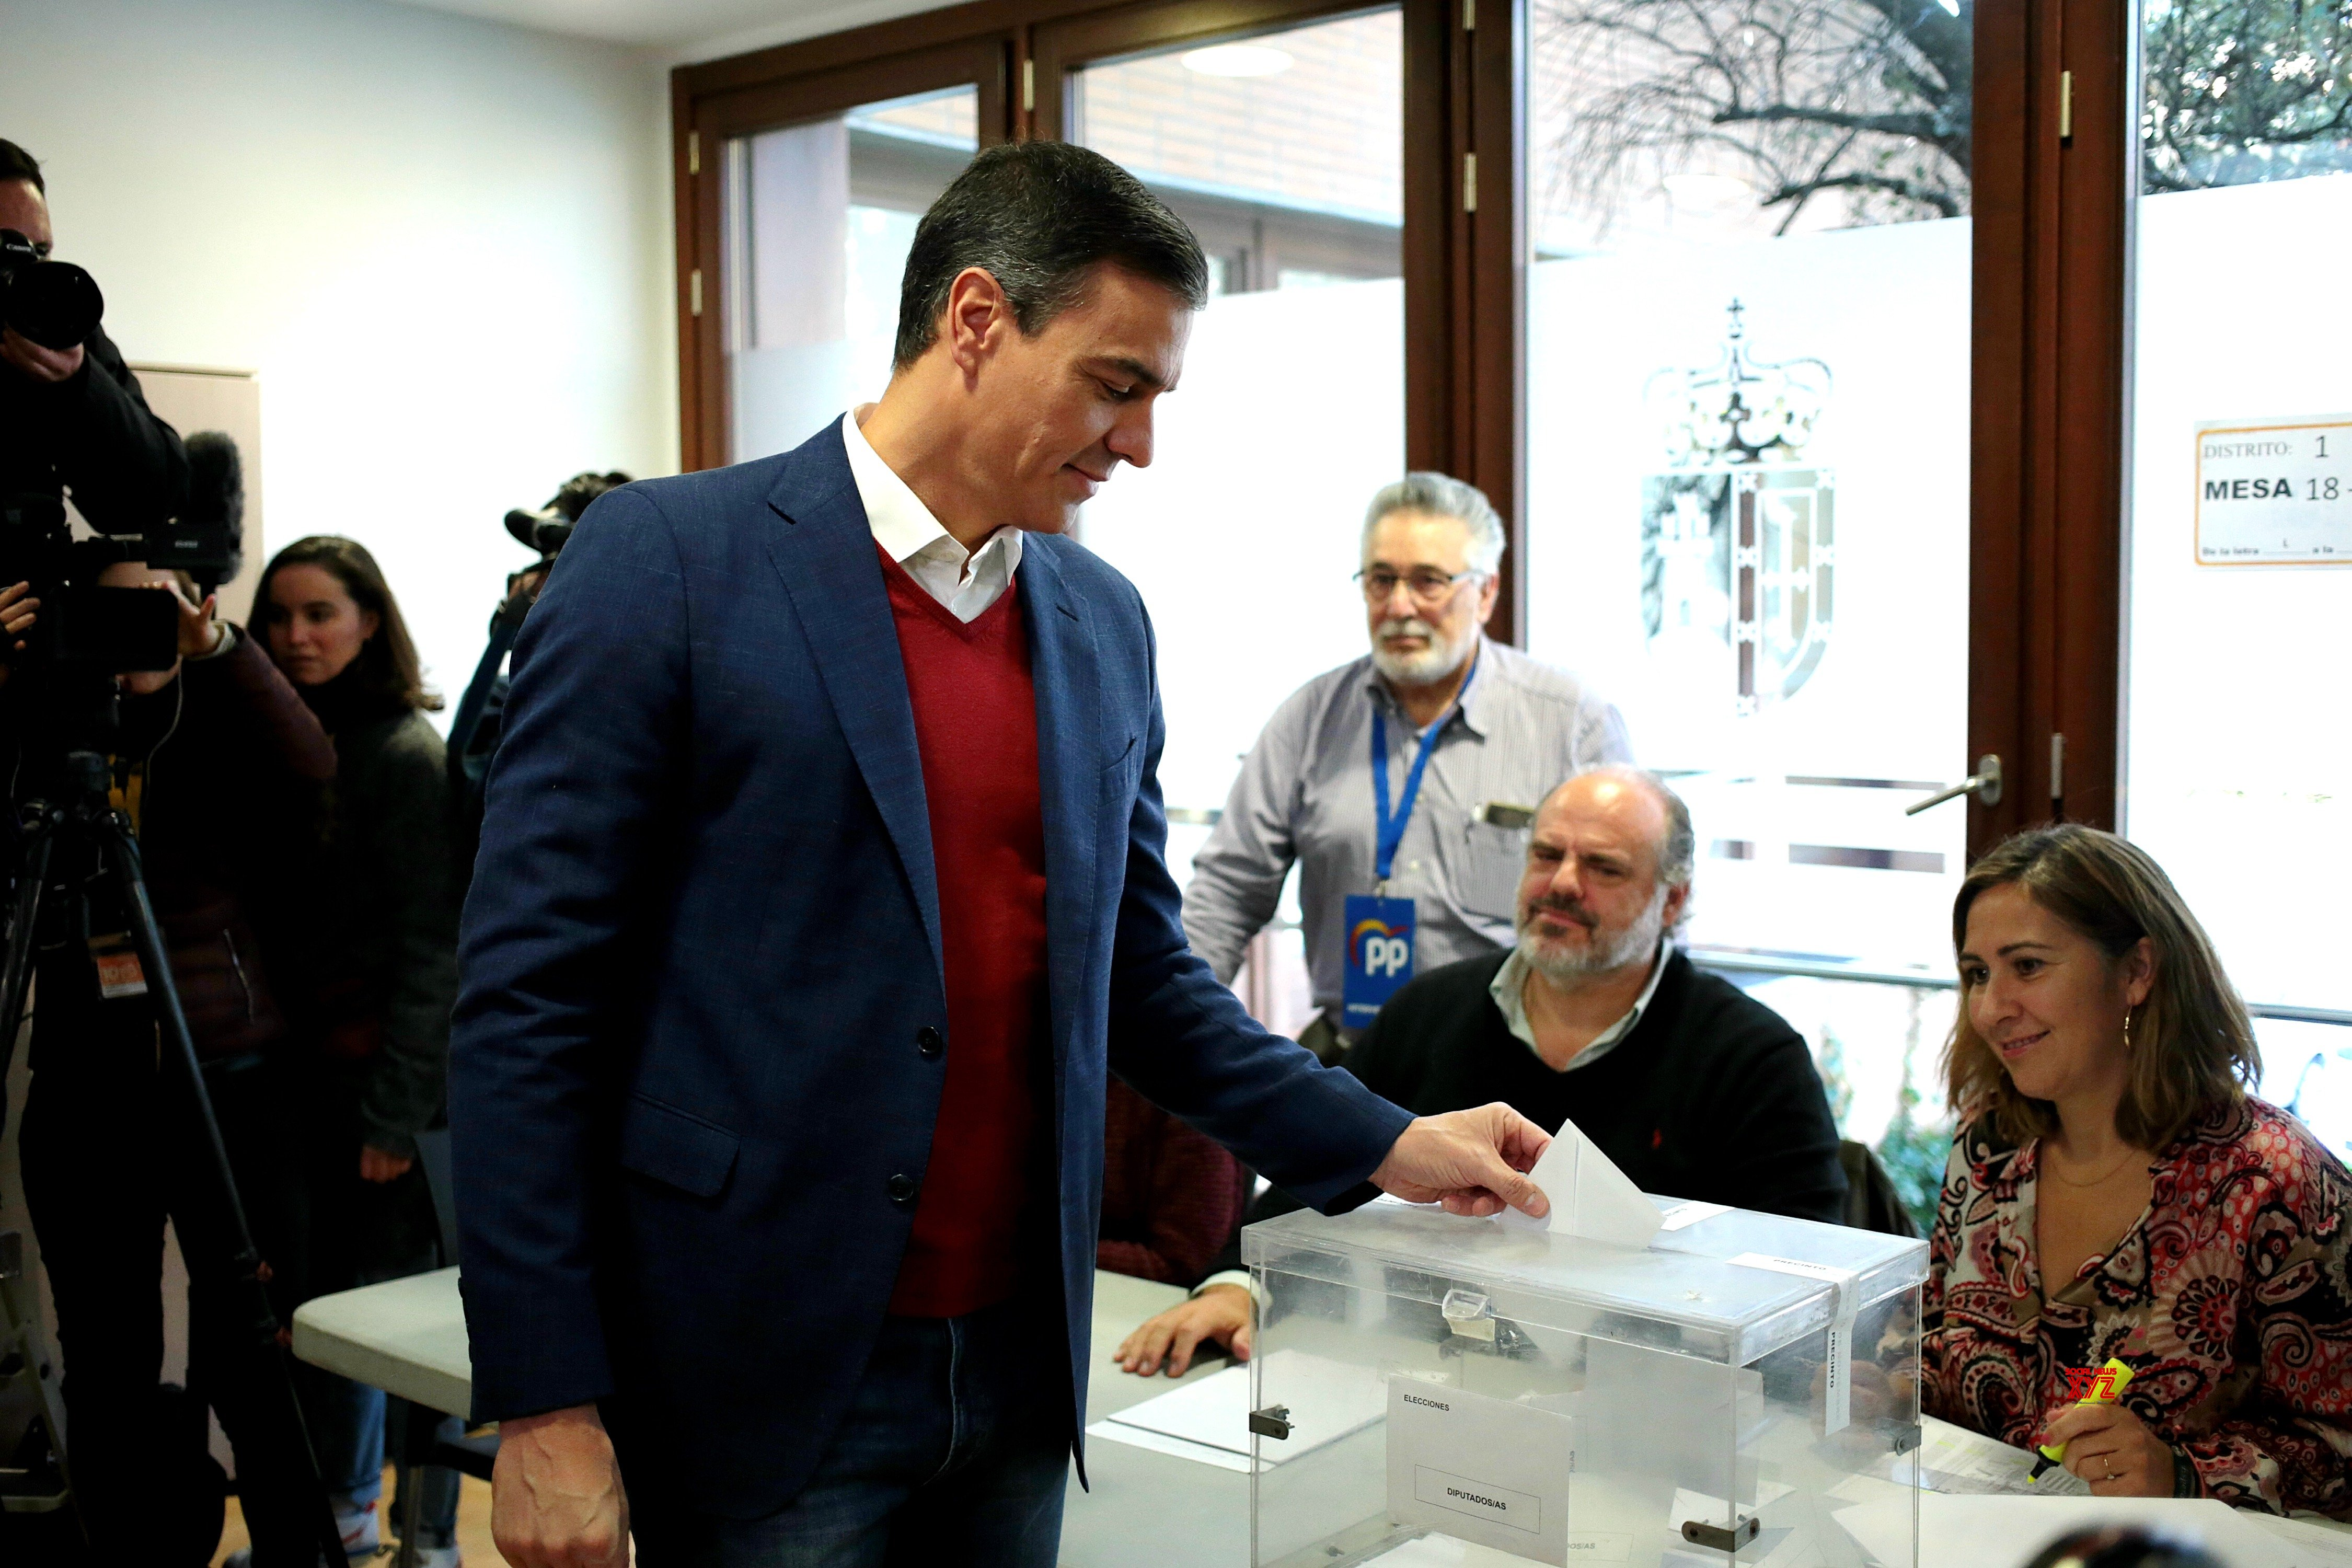 Spain votes in fourth election in 4 years